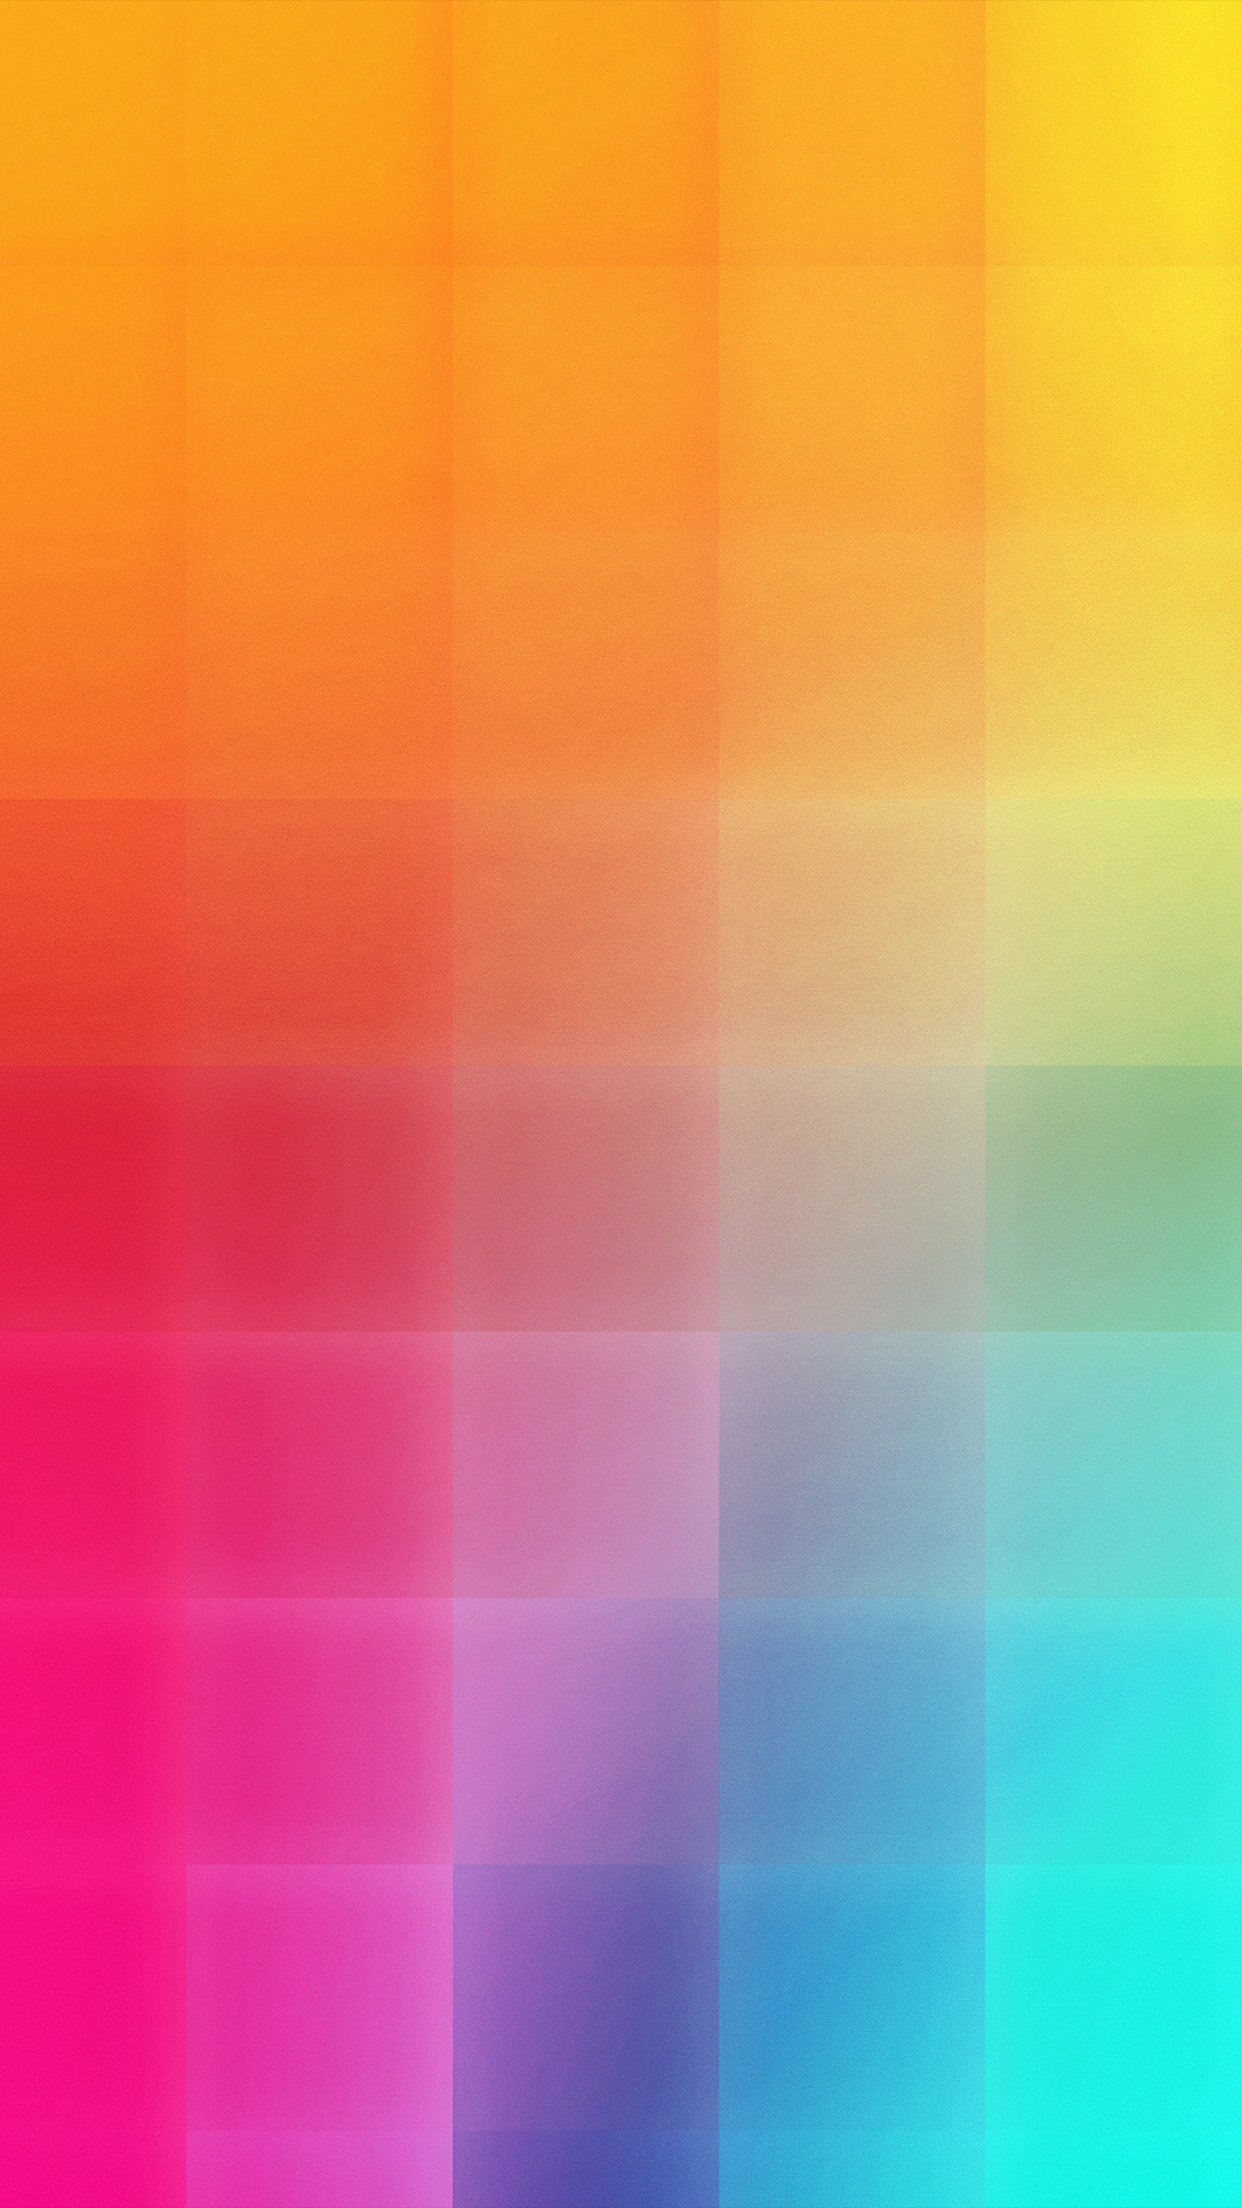 Background abstract cube rainbow red pattern android wallpaper background abstract cube rainbow red pattern android wallpaper android hd wallpapers voltagebd Images